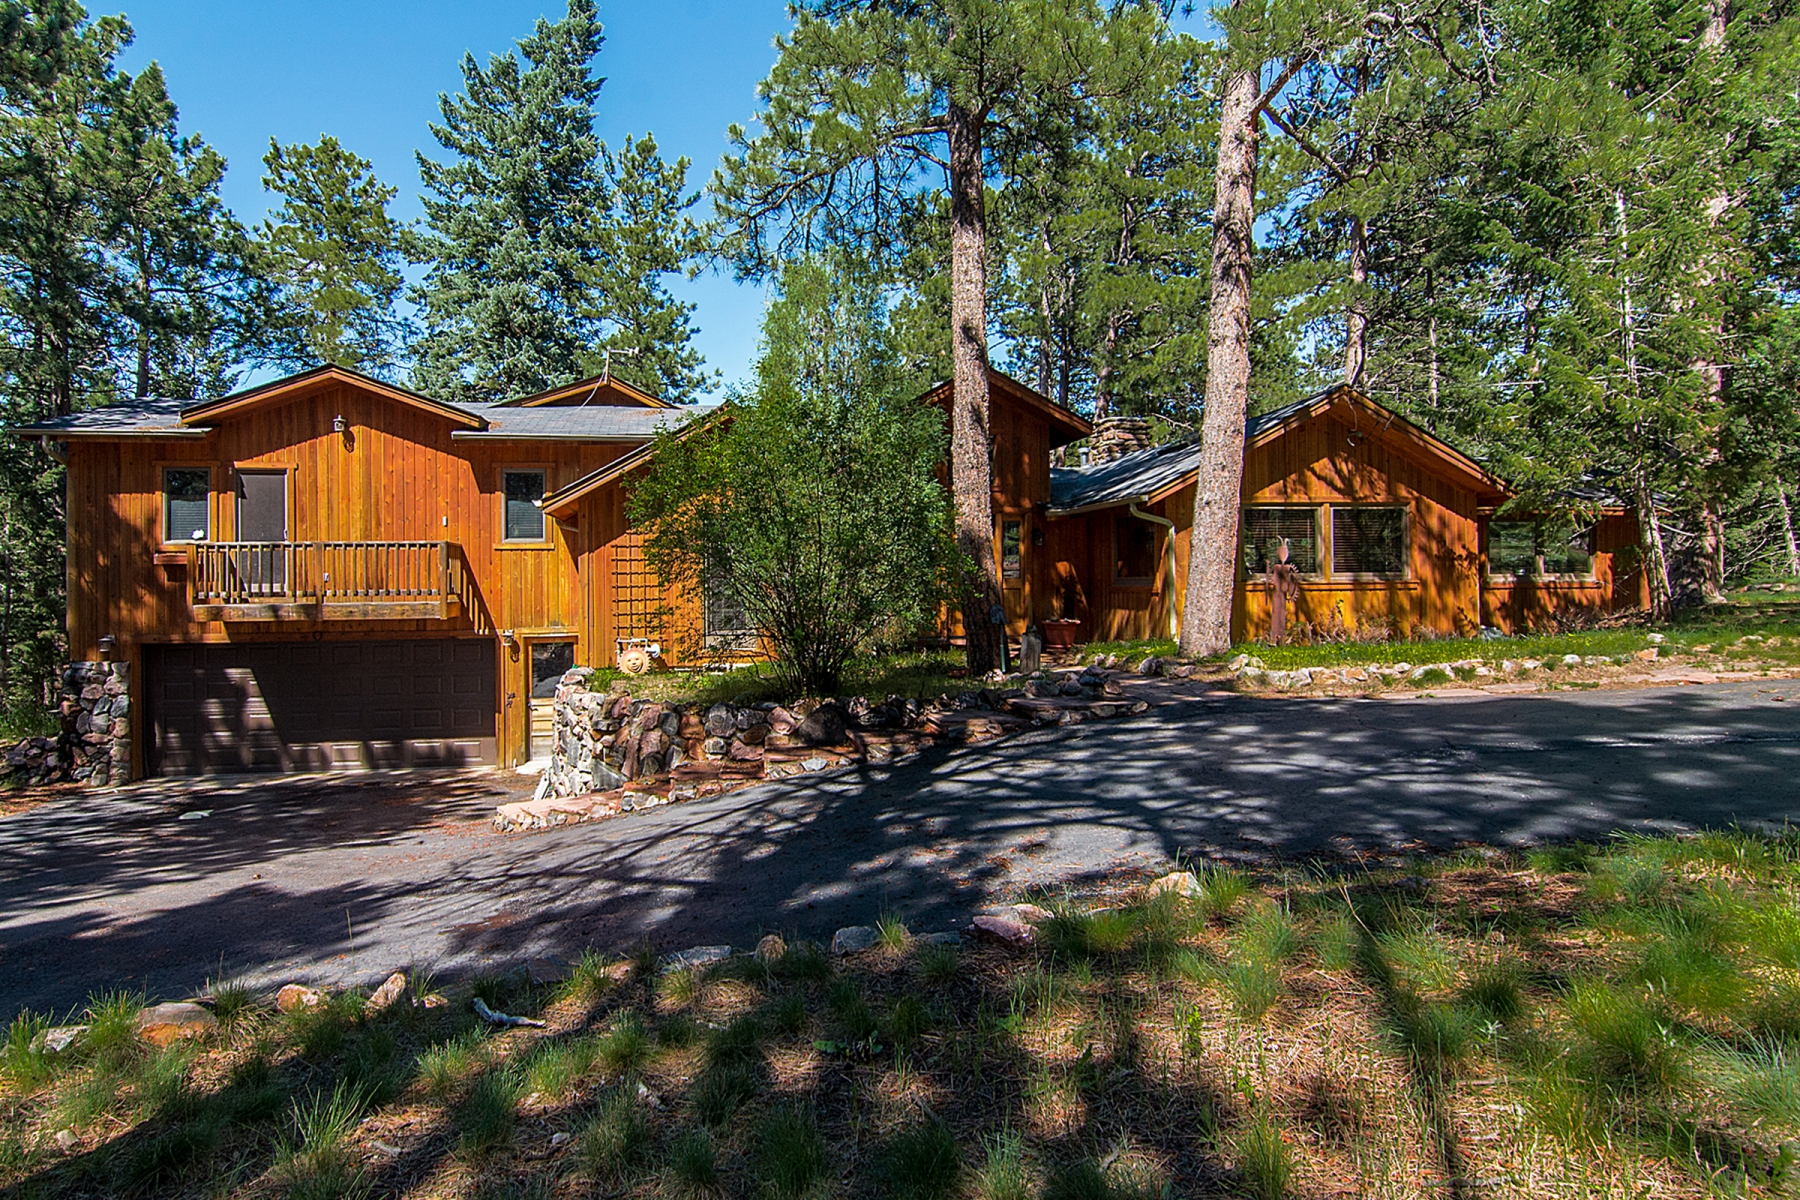 Single Family Home for Sale at Historic Mountain Chalet 350 Old Y Road Golden, Colorado 80401 United States